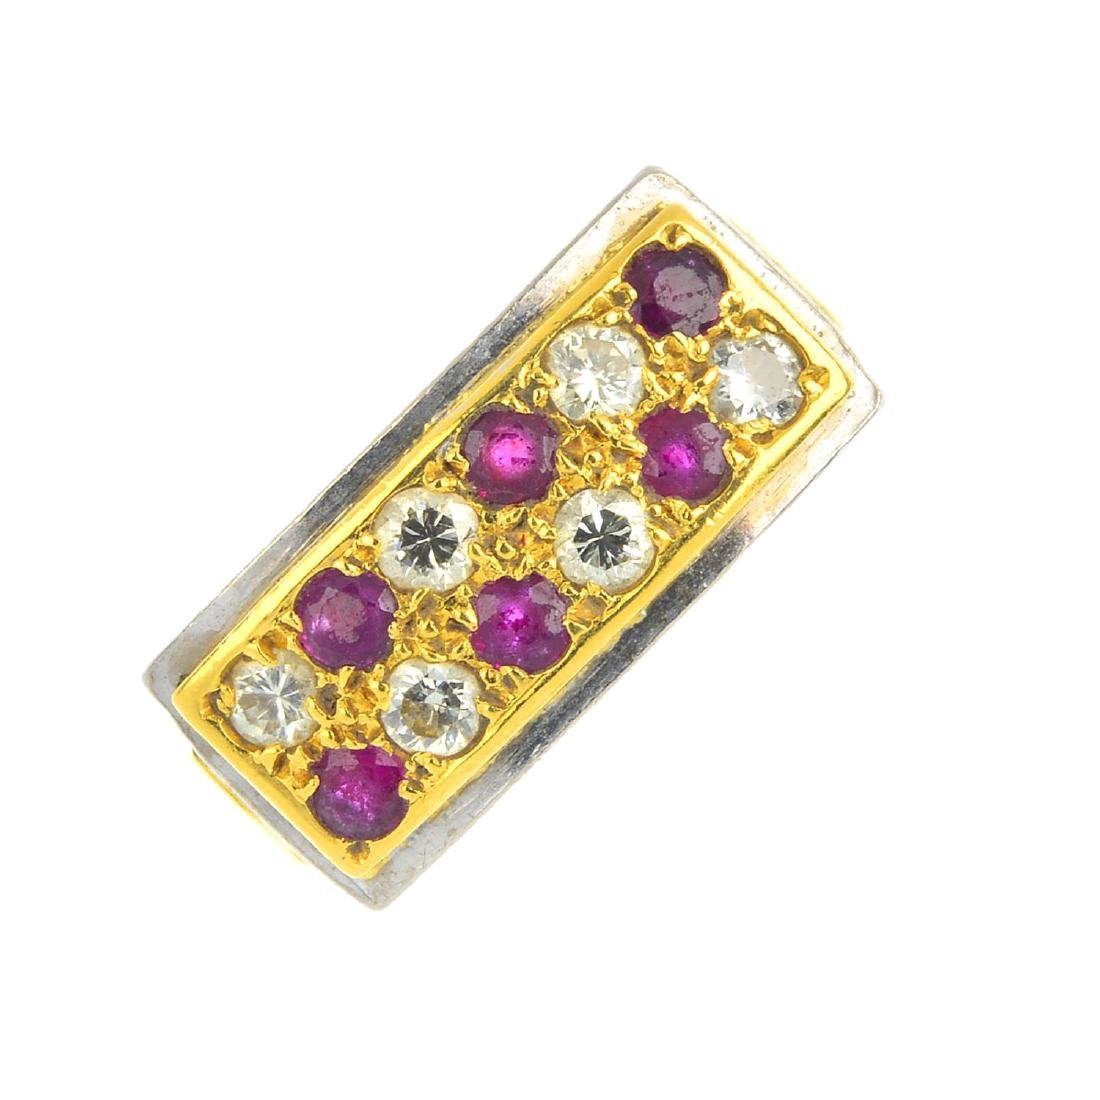 An 18ct gold ruby and diamond dress ring. Designed as